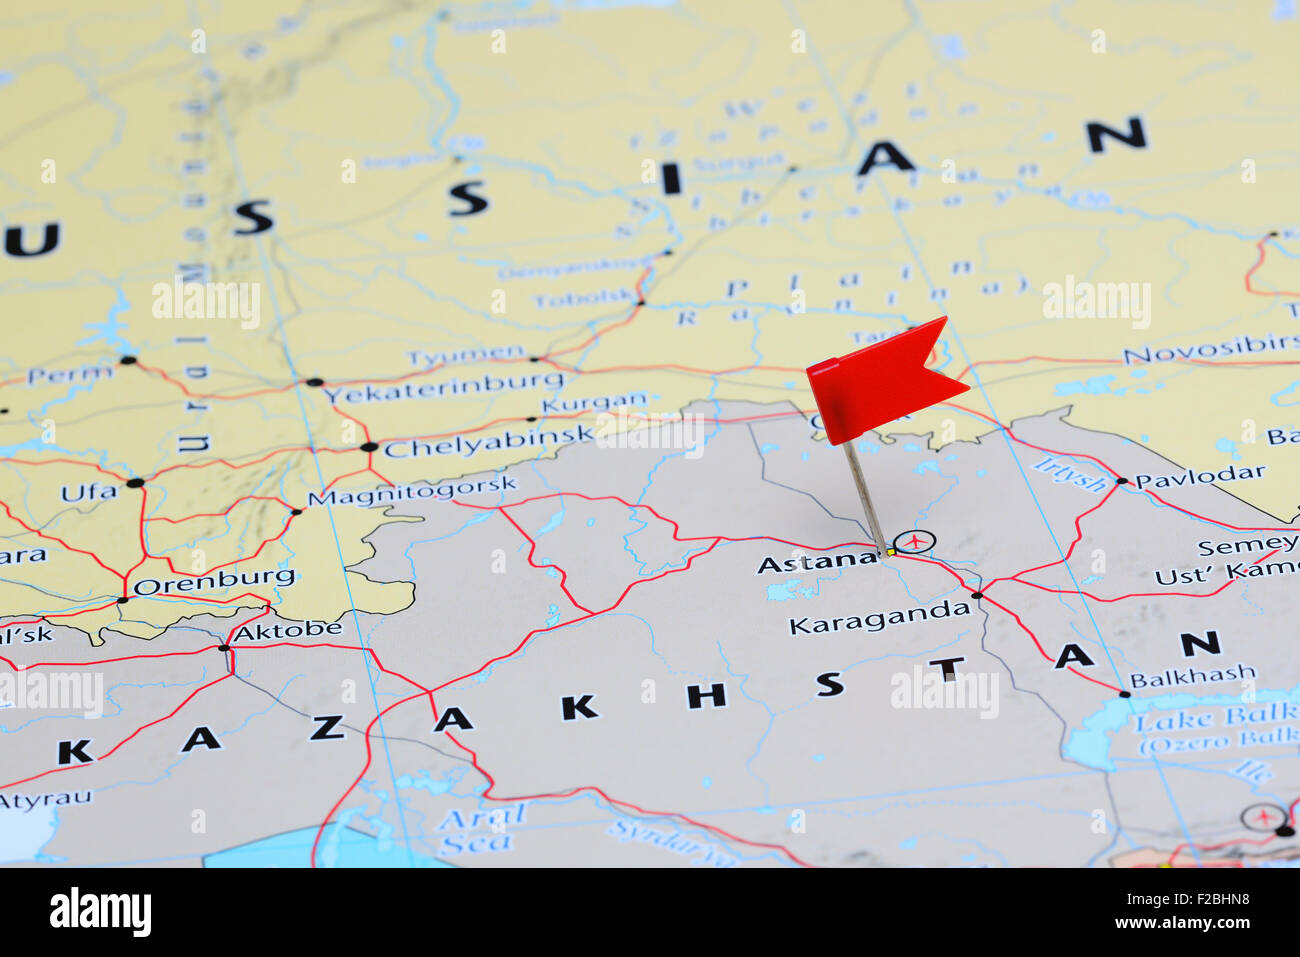 Astana pinned on a map of Asia Stock Photo Royalty Free Image